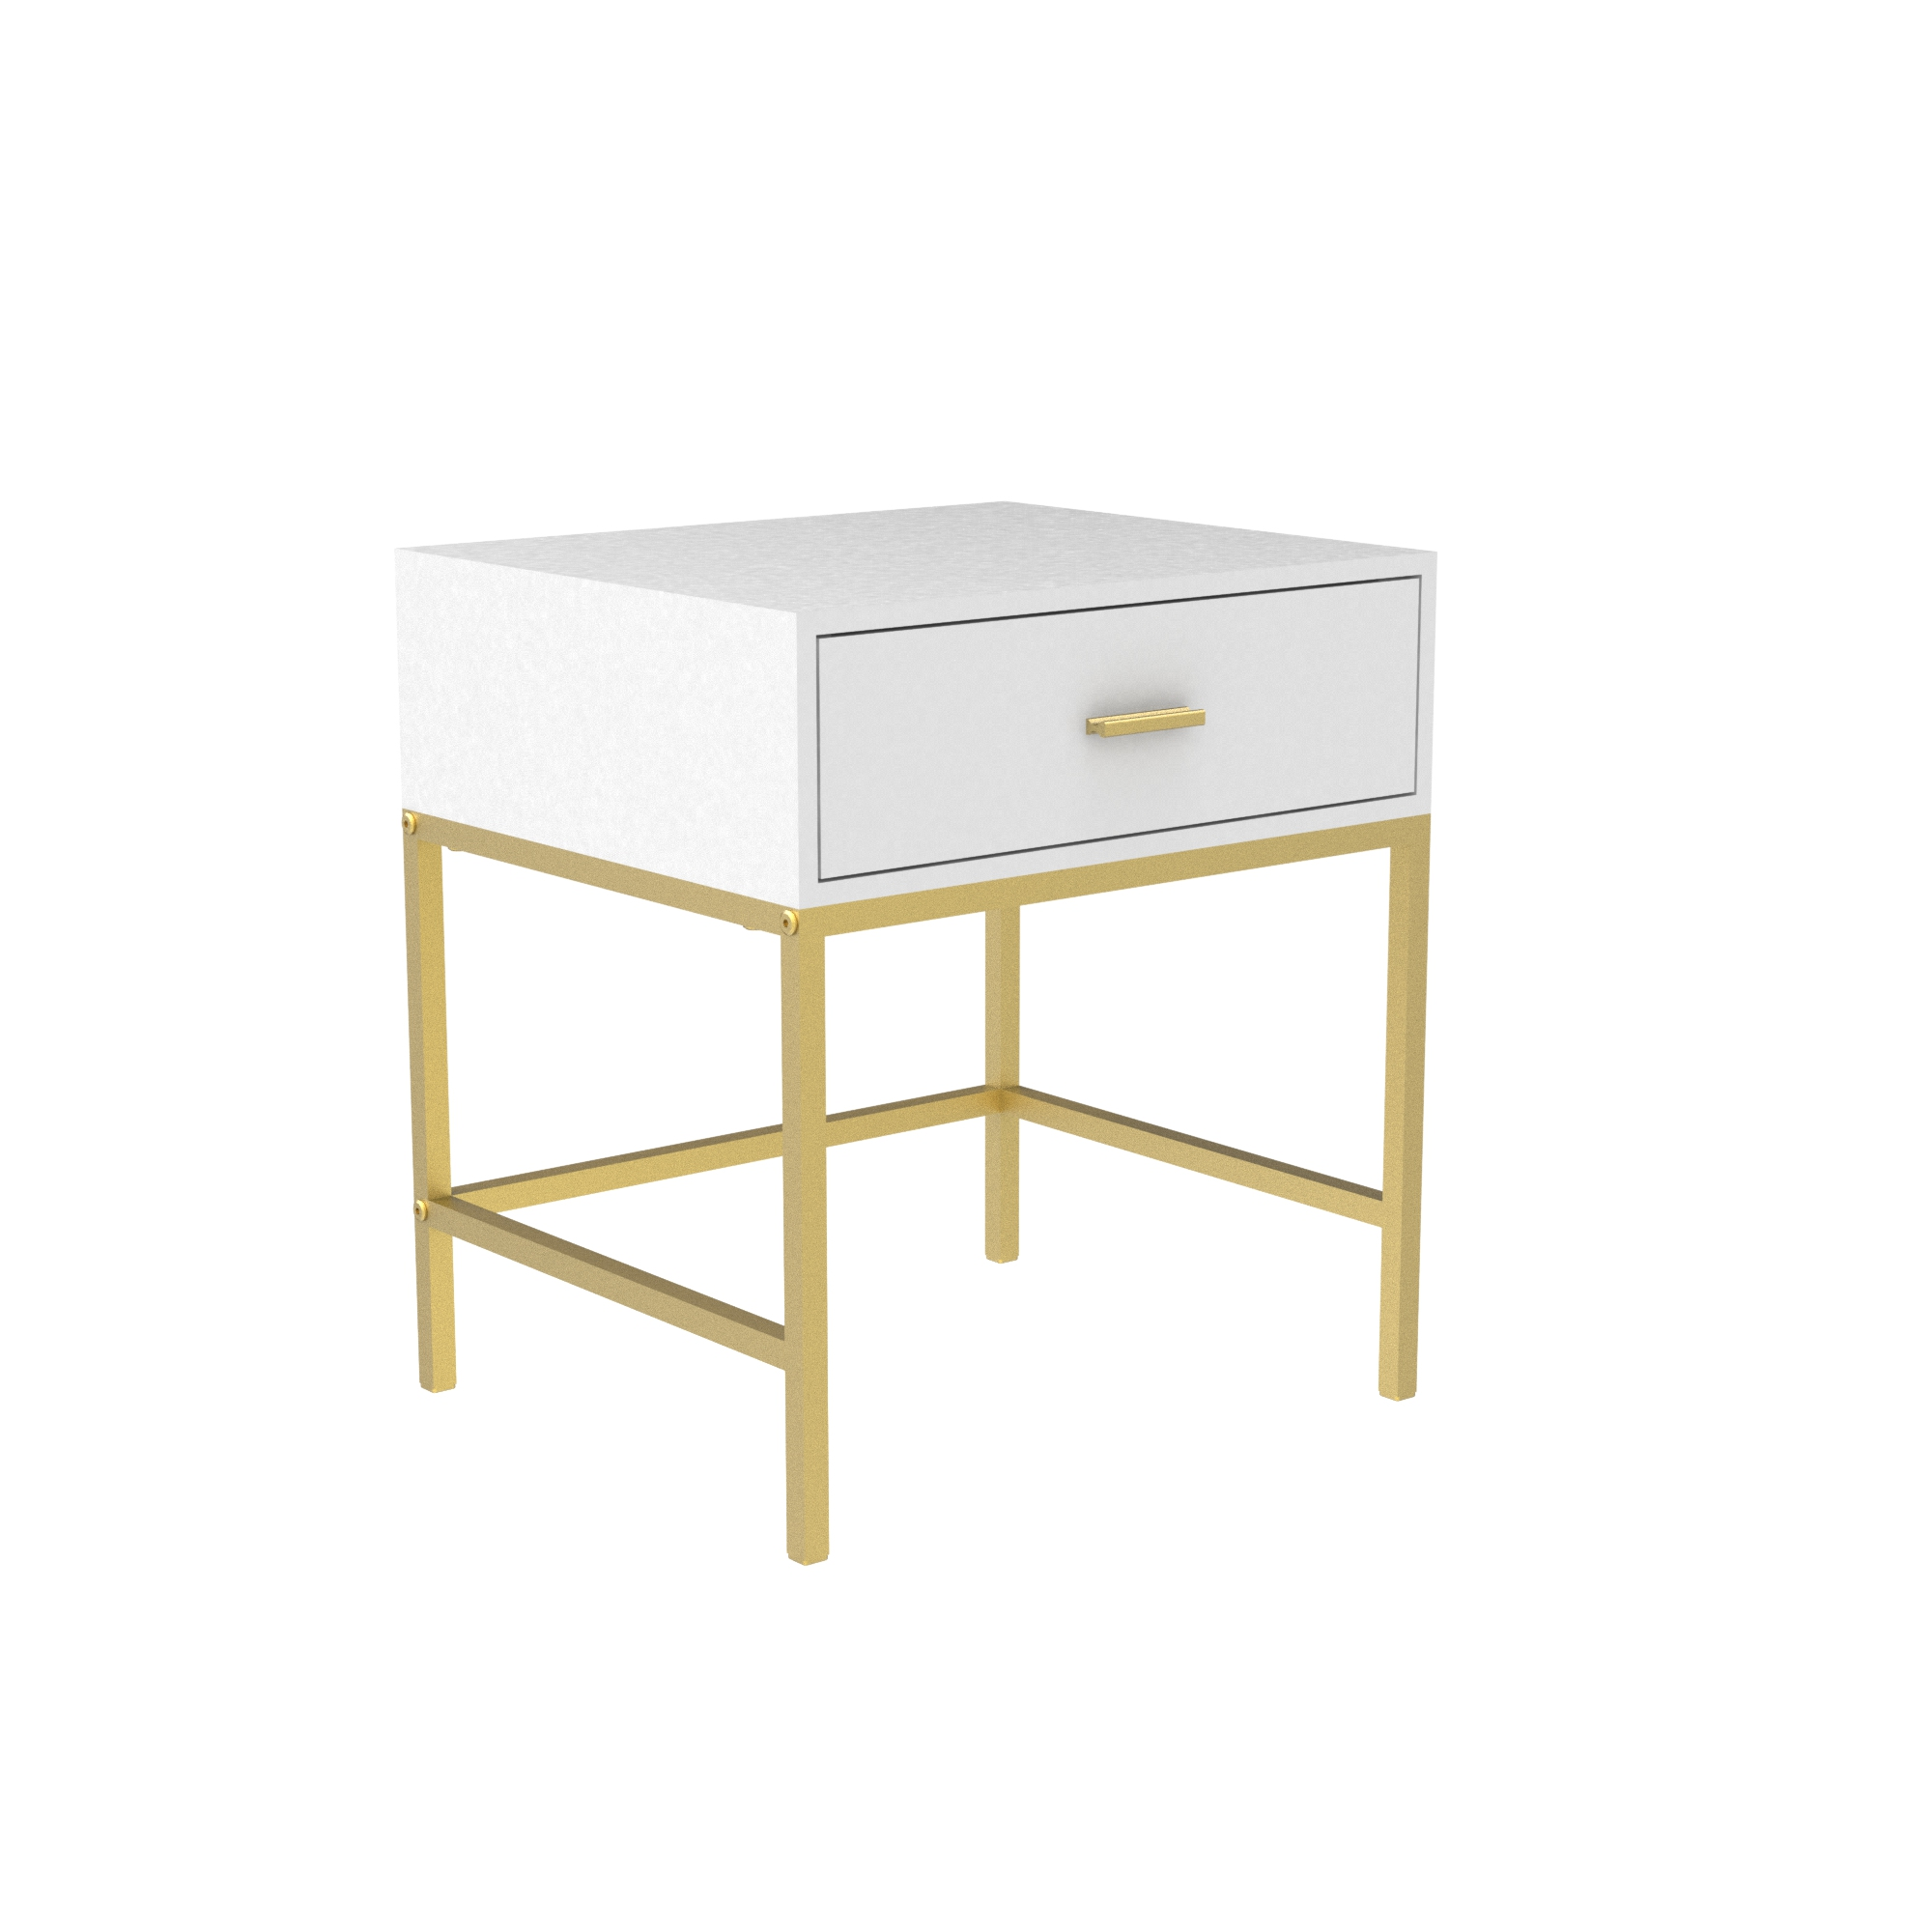 Nordic Ins Nanogold Foot Bedside Table With Drawers Modern Minimalist Metal Cabinet Bedroom Night Stand Side Table Free Shipping